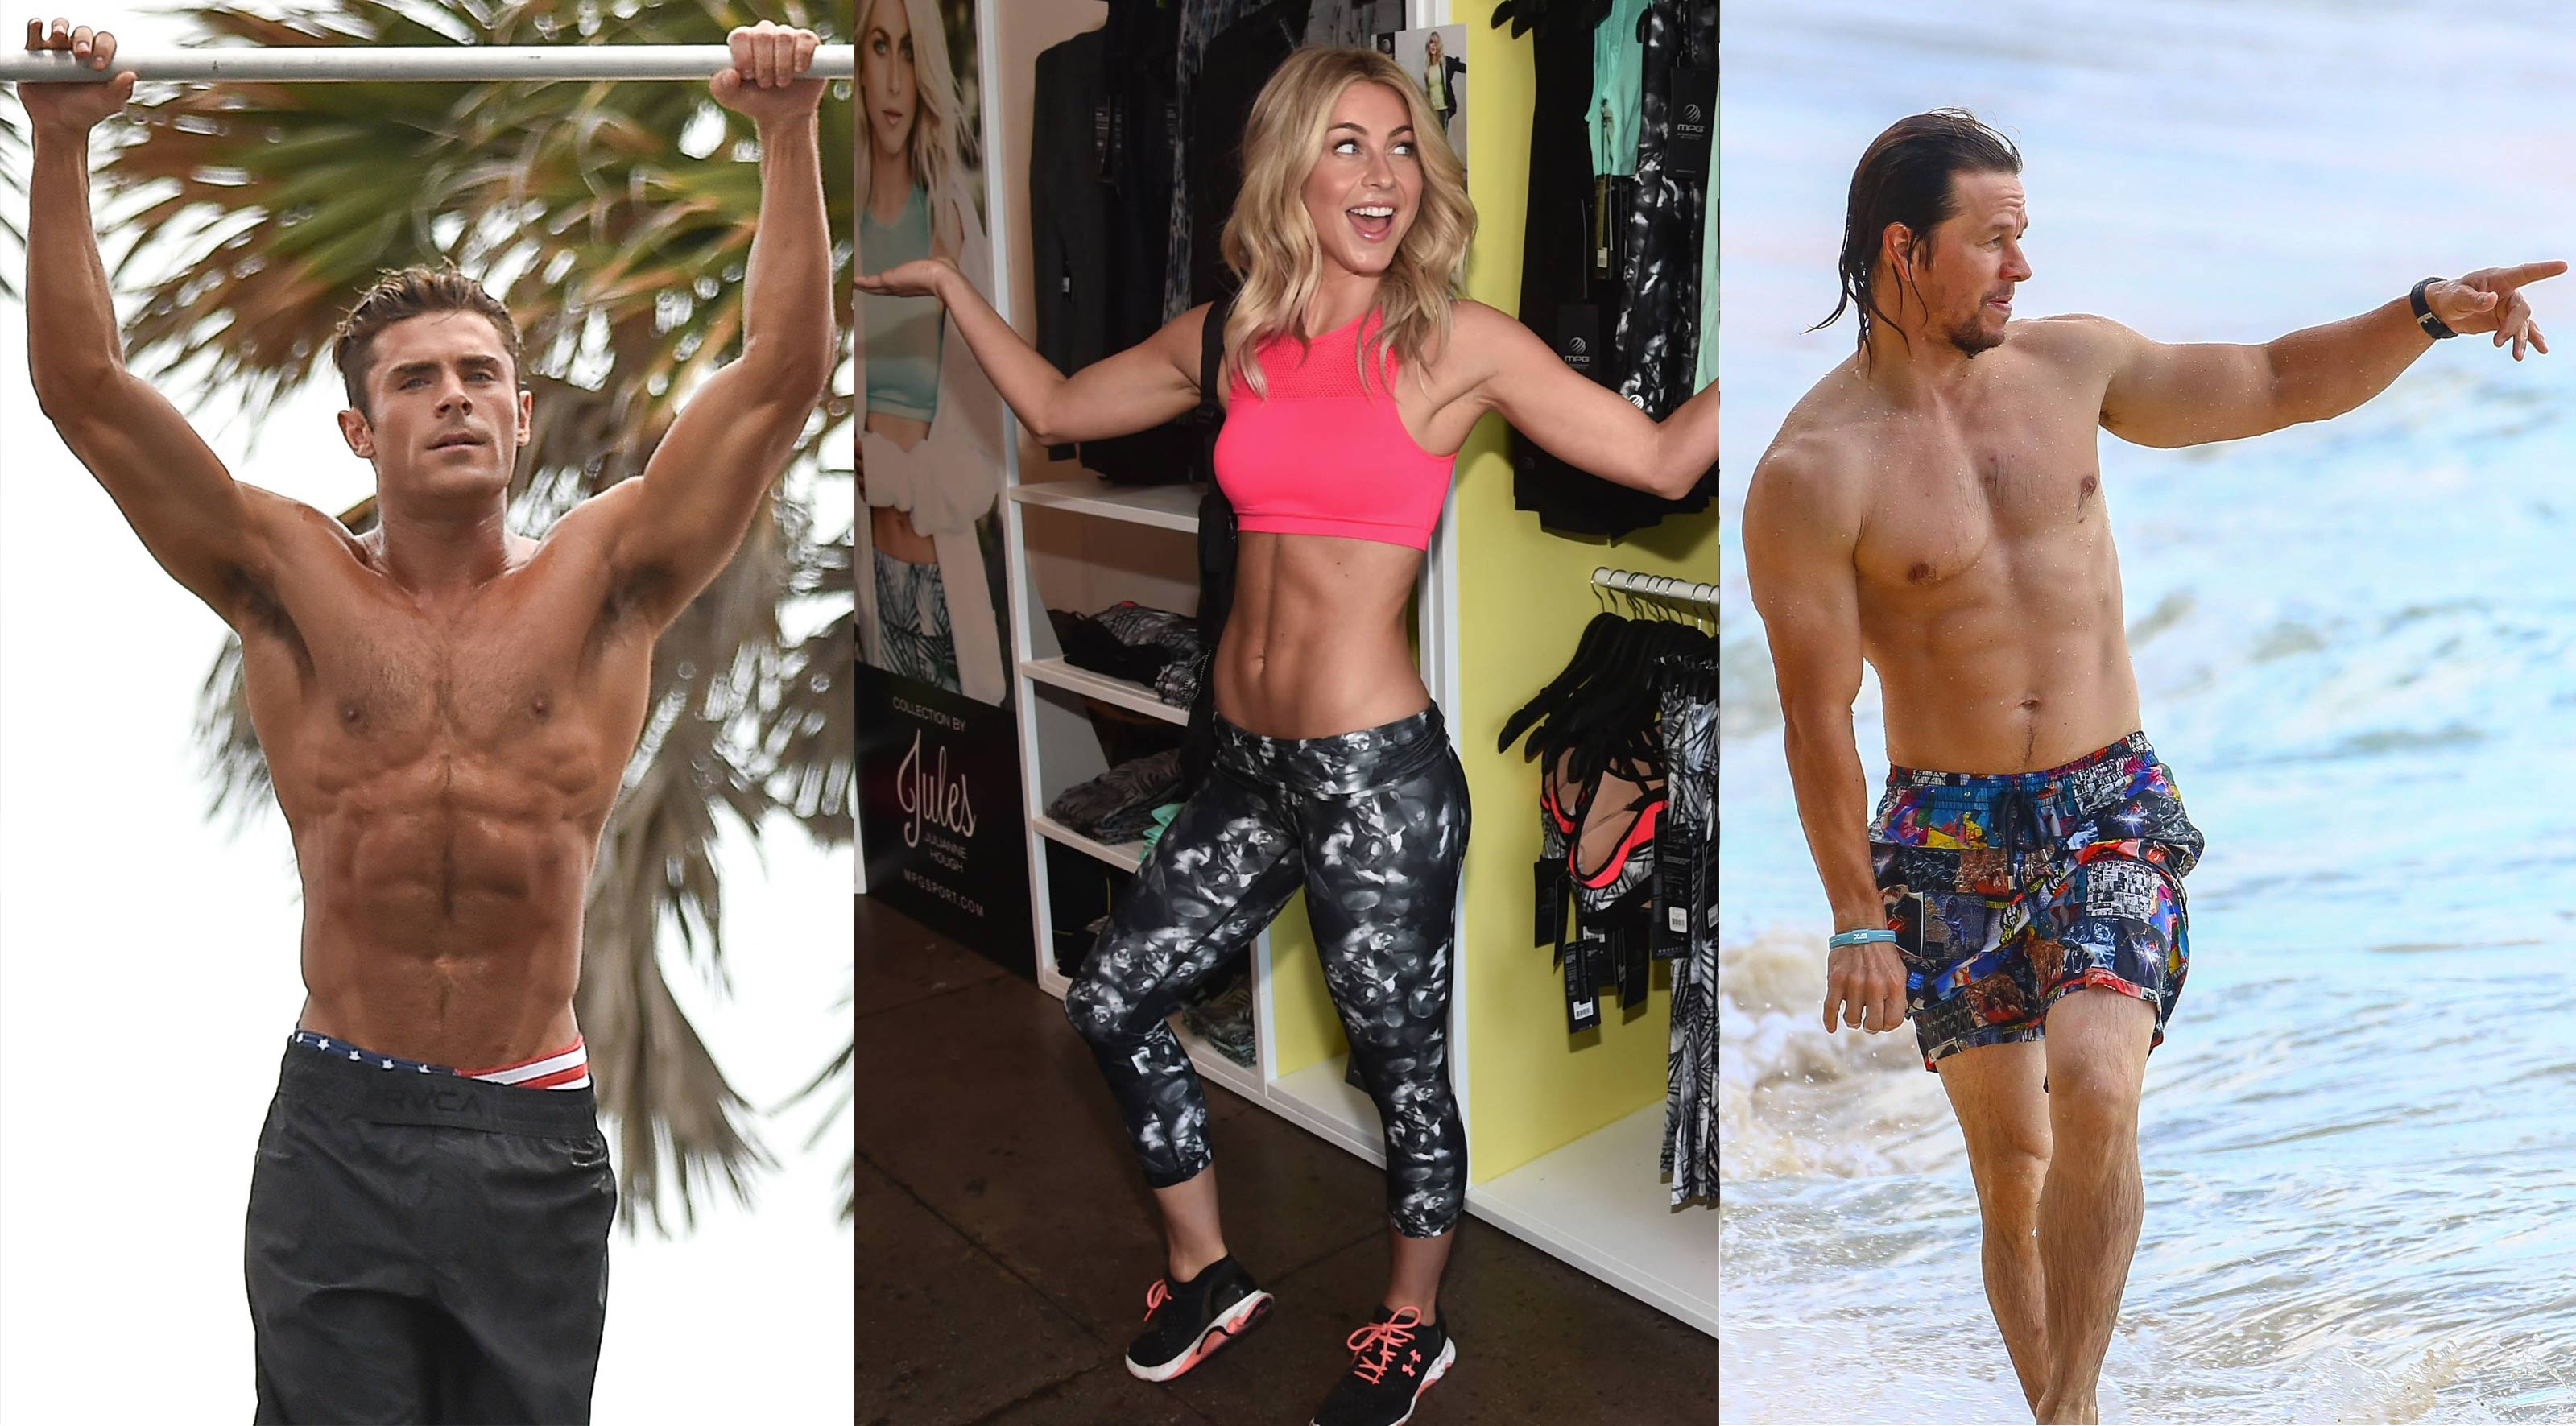 6 hardcore abs tips from Hollywood superstars